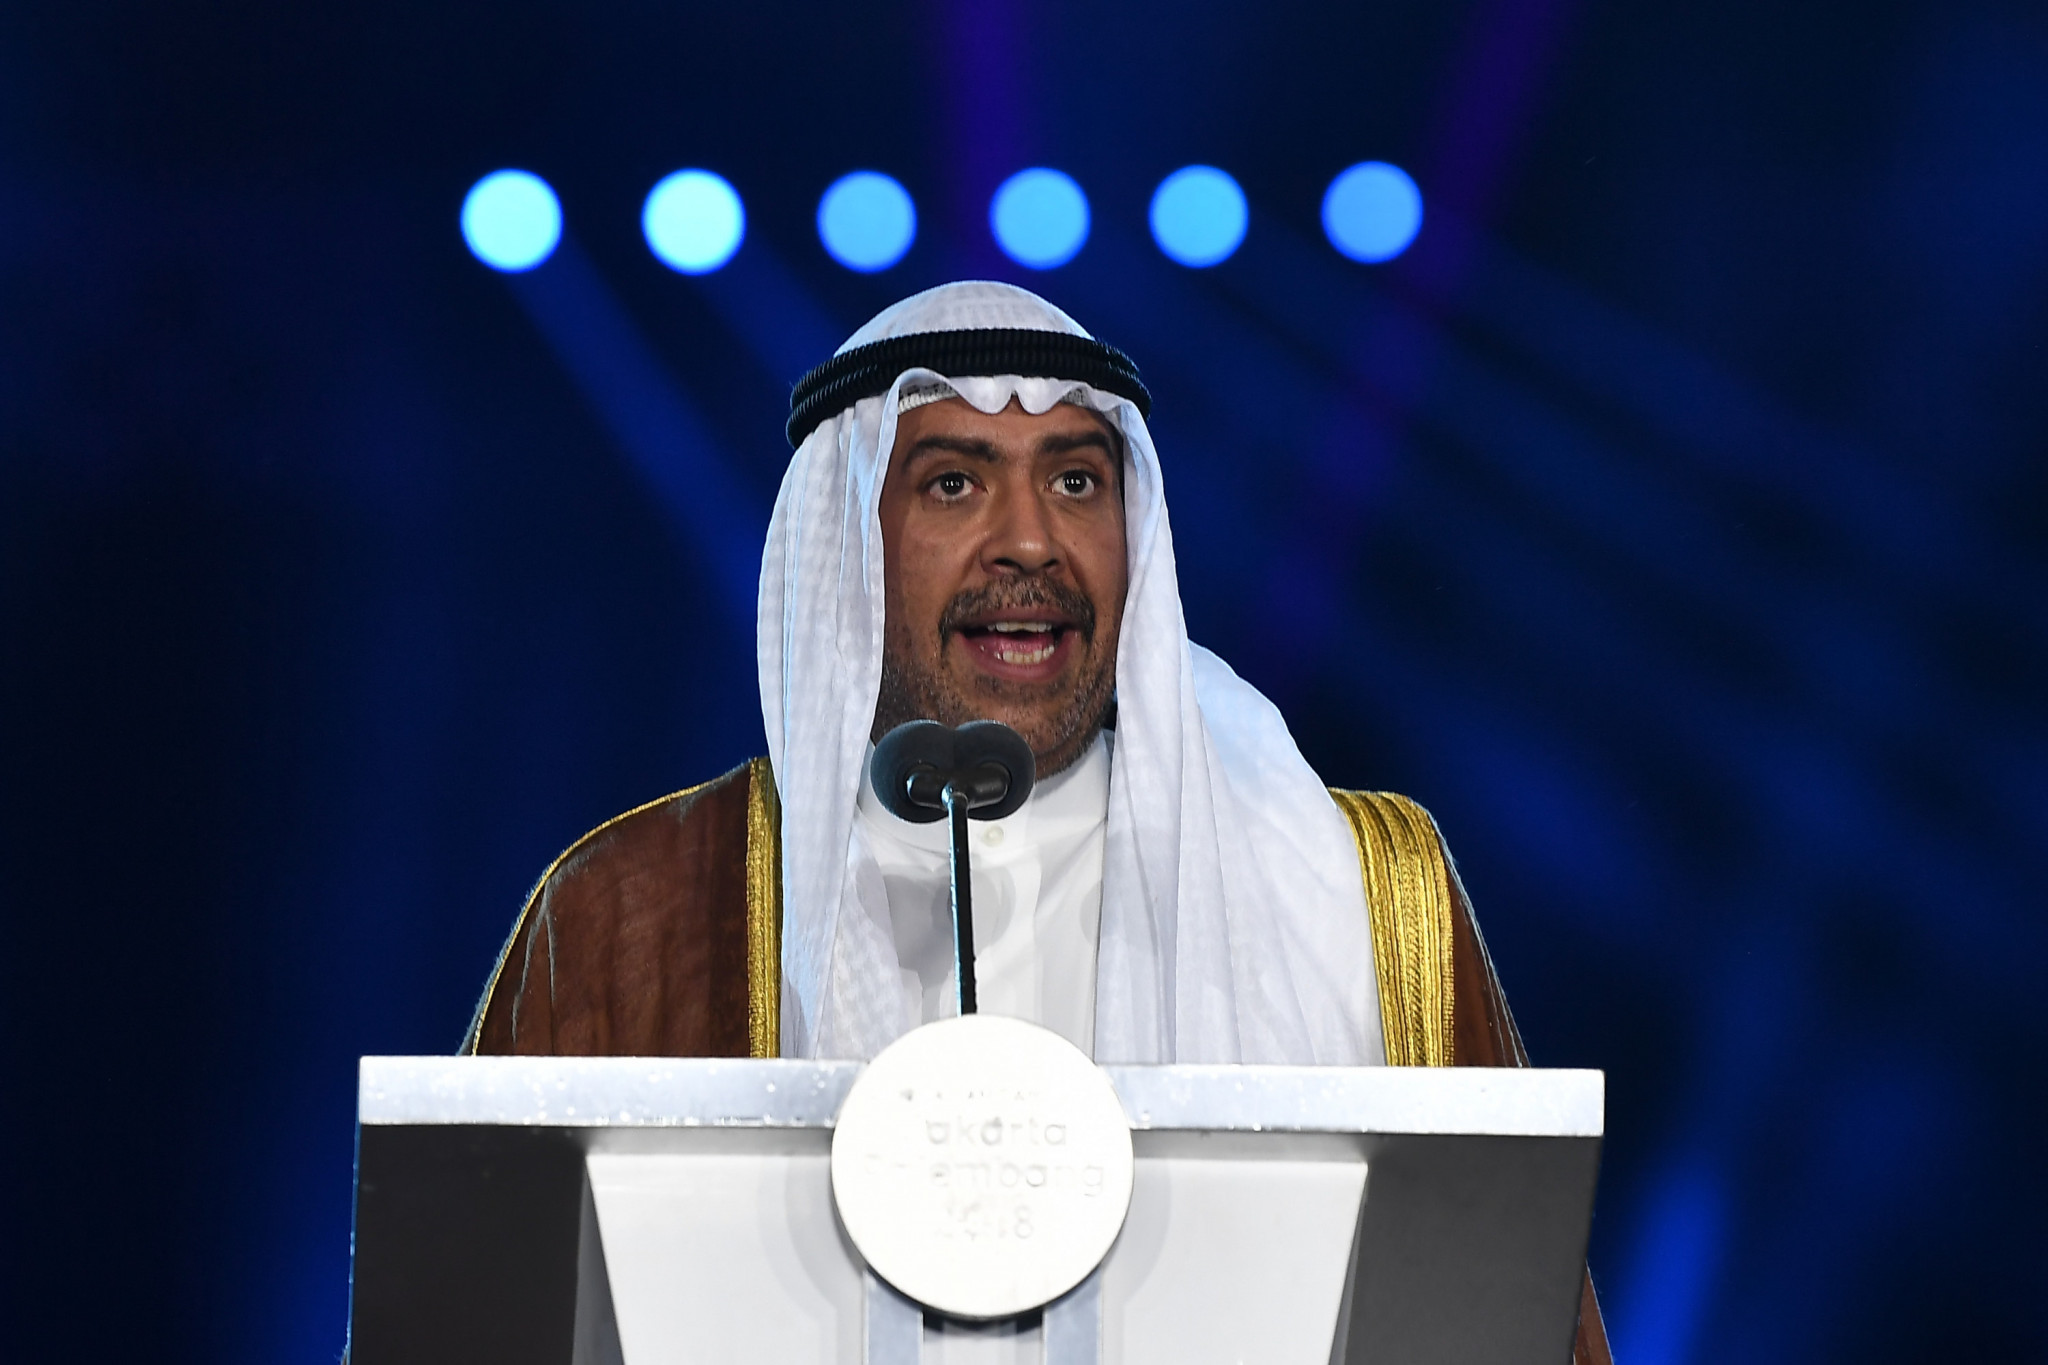 Sheikh Ahmad Al-Fahad Al-Sabah has been President of the OCA since 1991 ©Getty Images